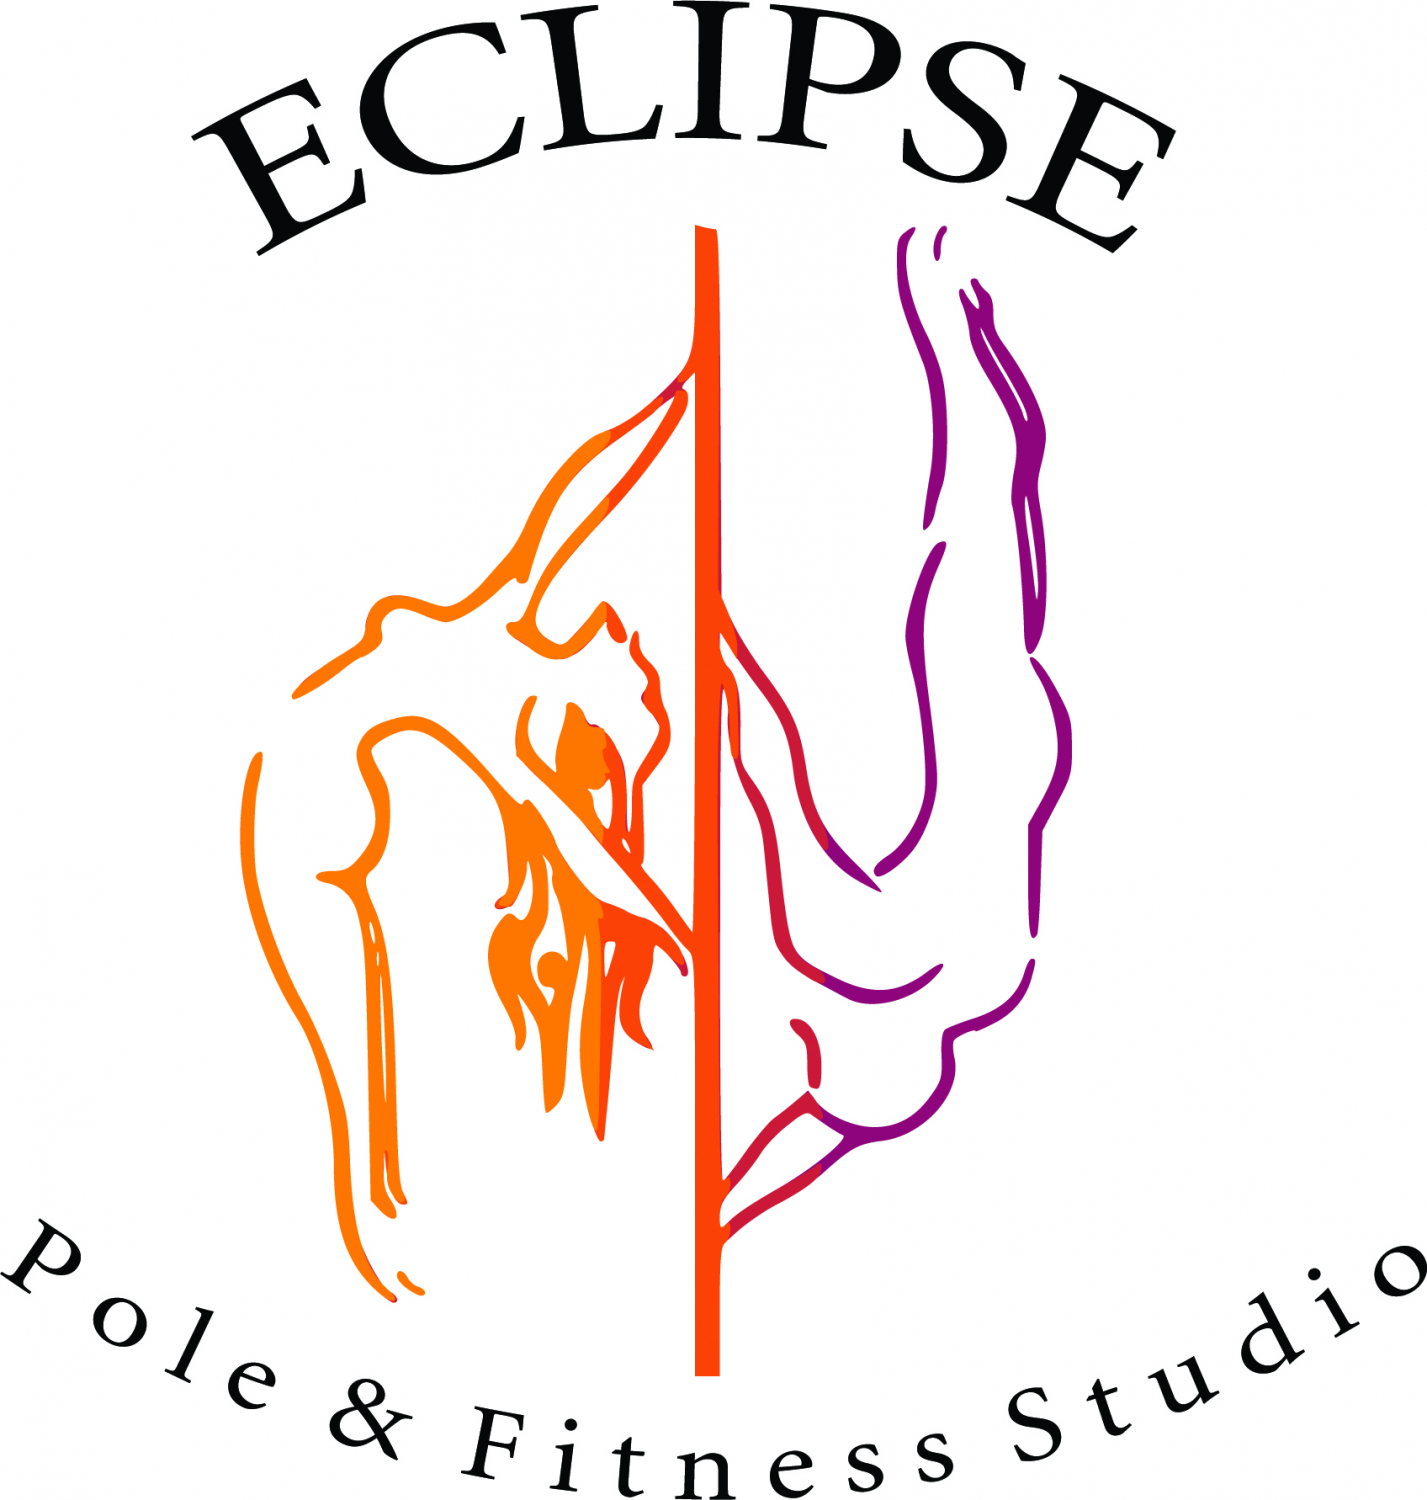 Eclipse Pole & Fitness Studio